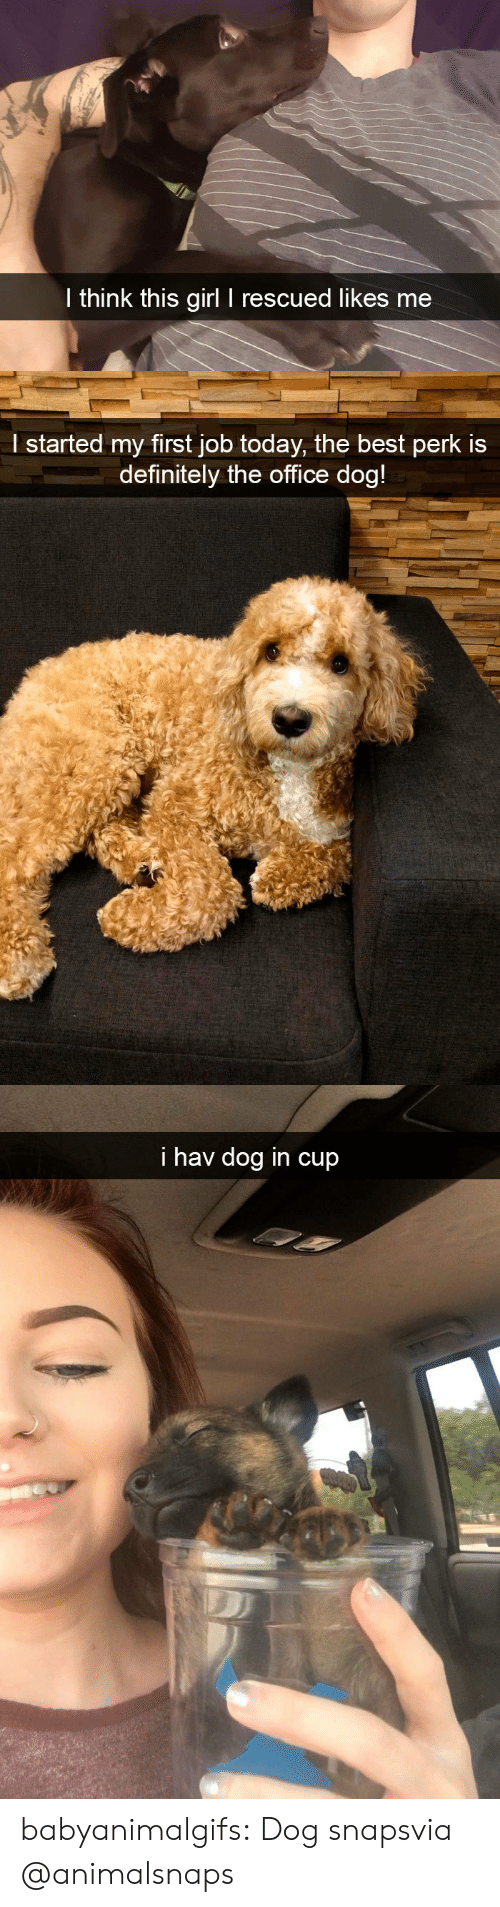 Definitely, The Office, and Tumblr: l think this girl I rescued likes me   l started my first job today, the best perk is  definitely the office doa   i hav dog in cup babyanimalgifs:  Dog snapsvia @animalsnaps​